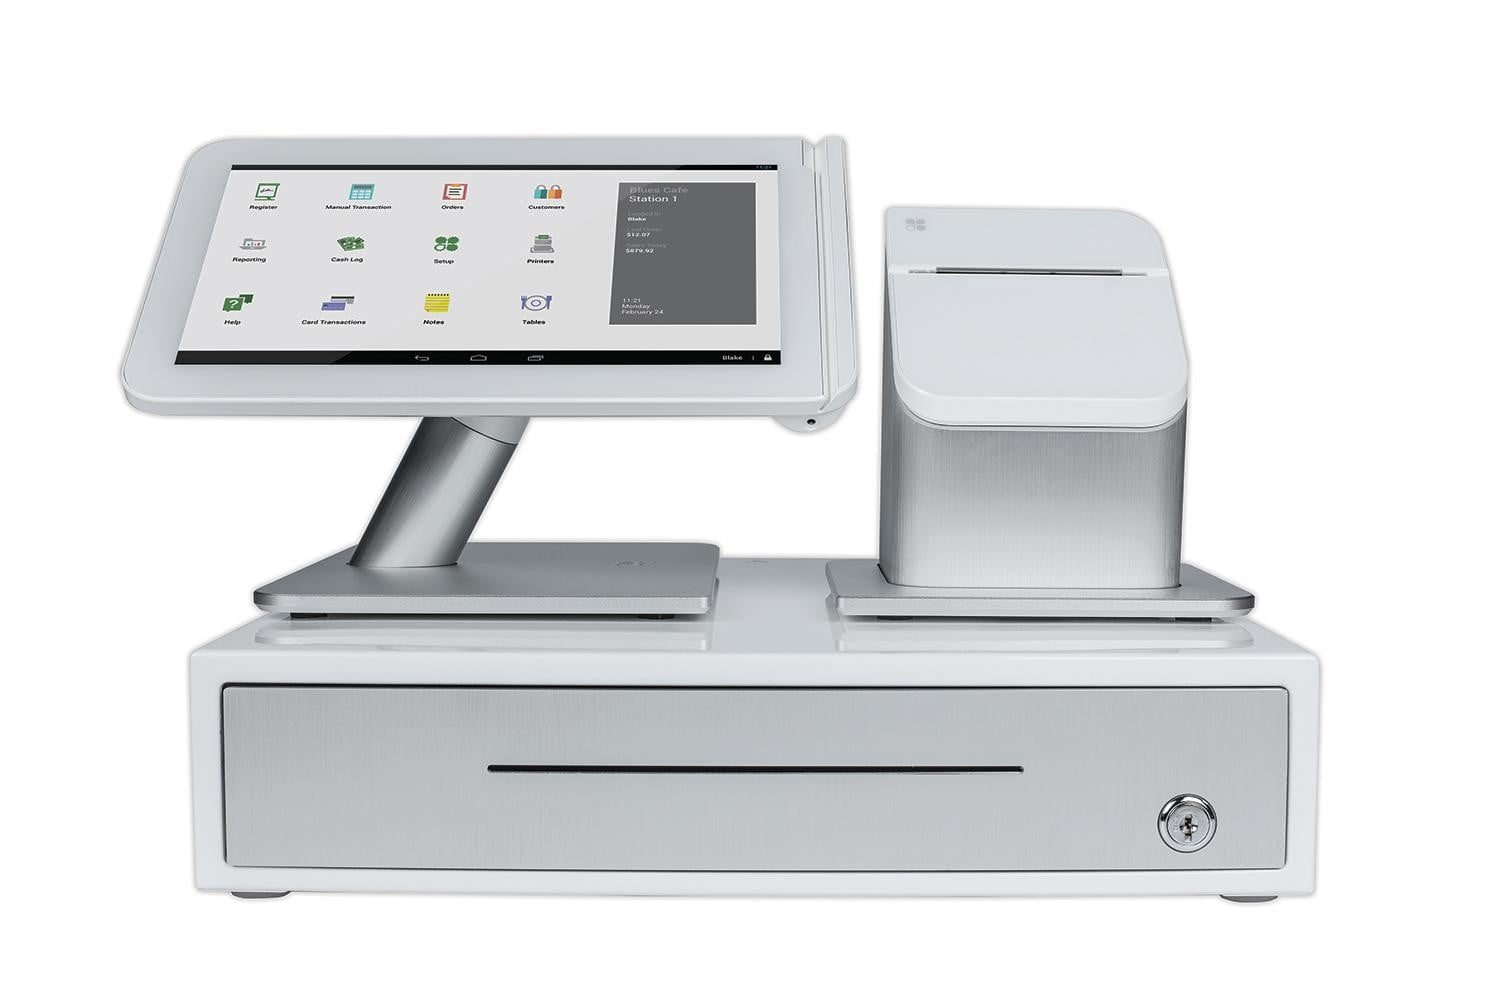 mobile payments are coming heres how theyll work clover station printer cash